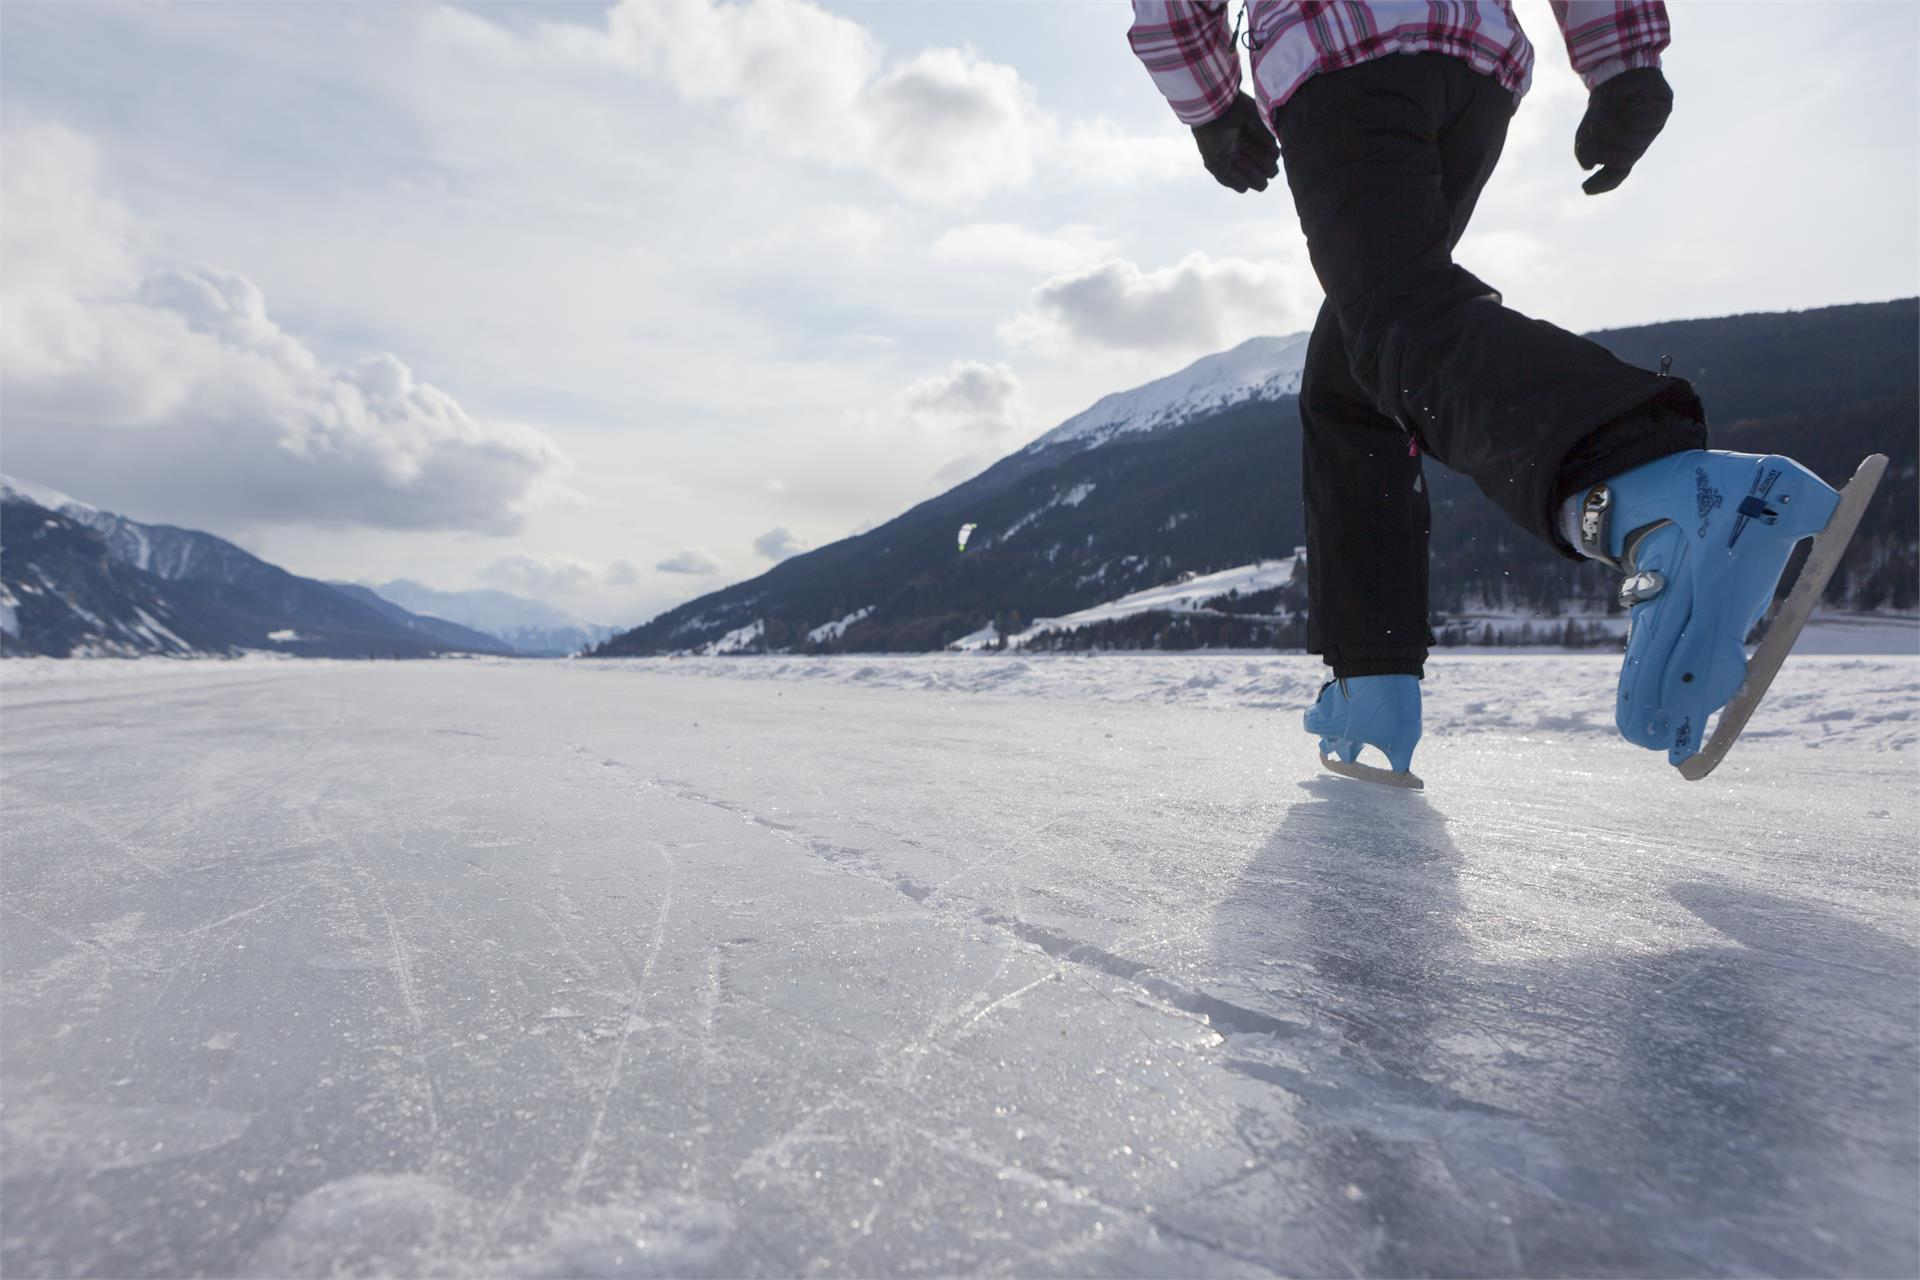 Ice skating on the lake Haidersee